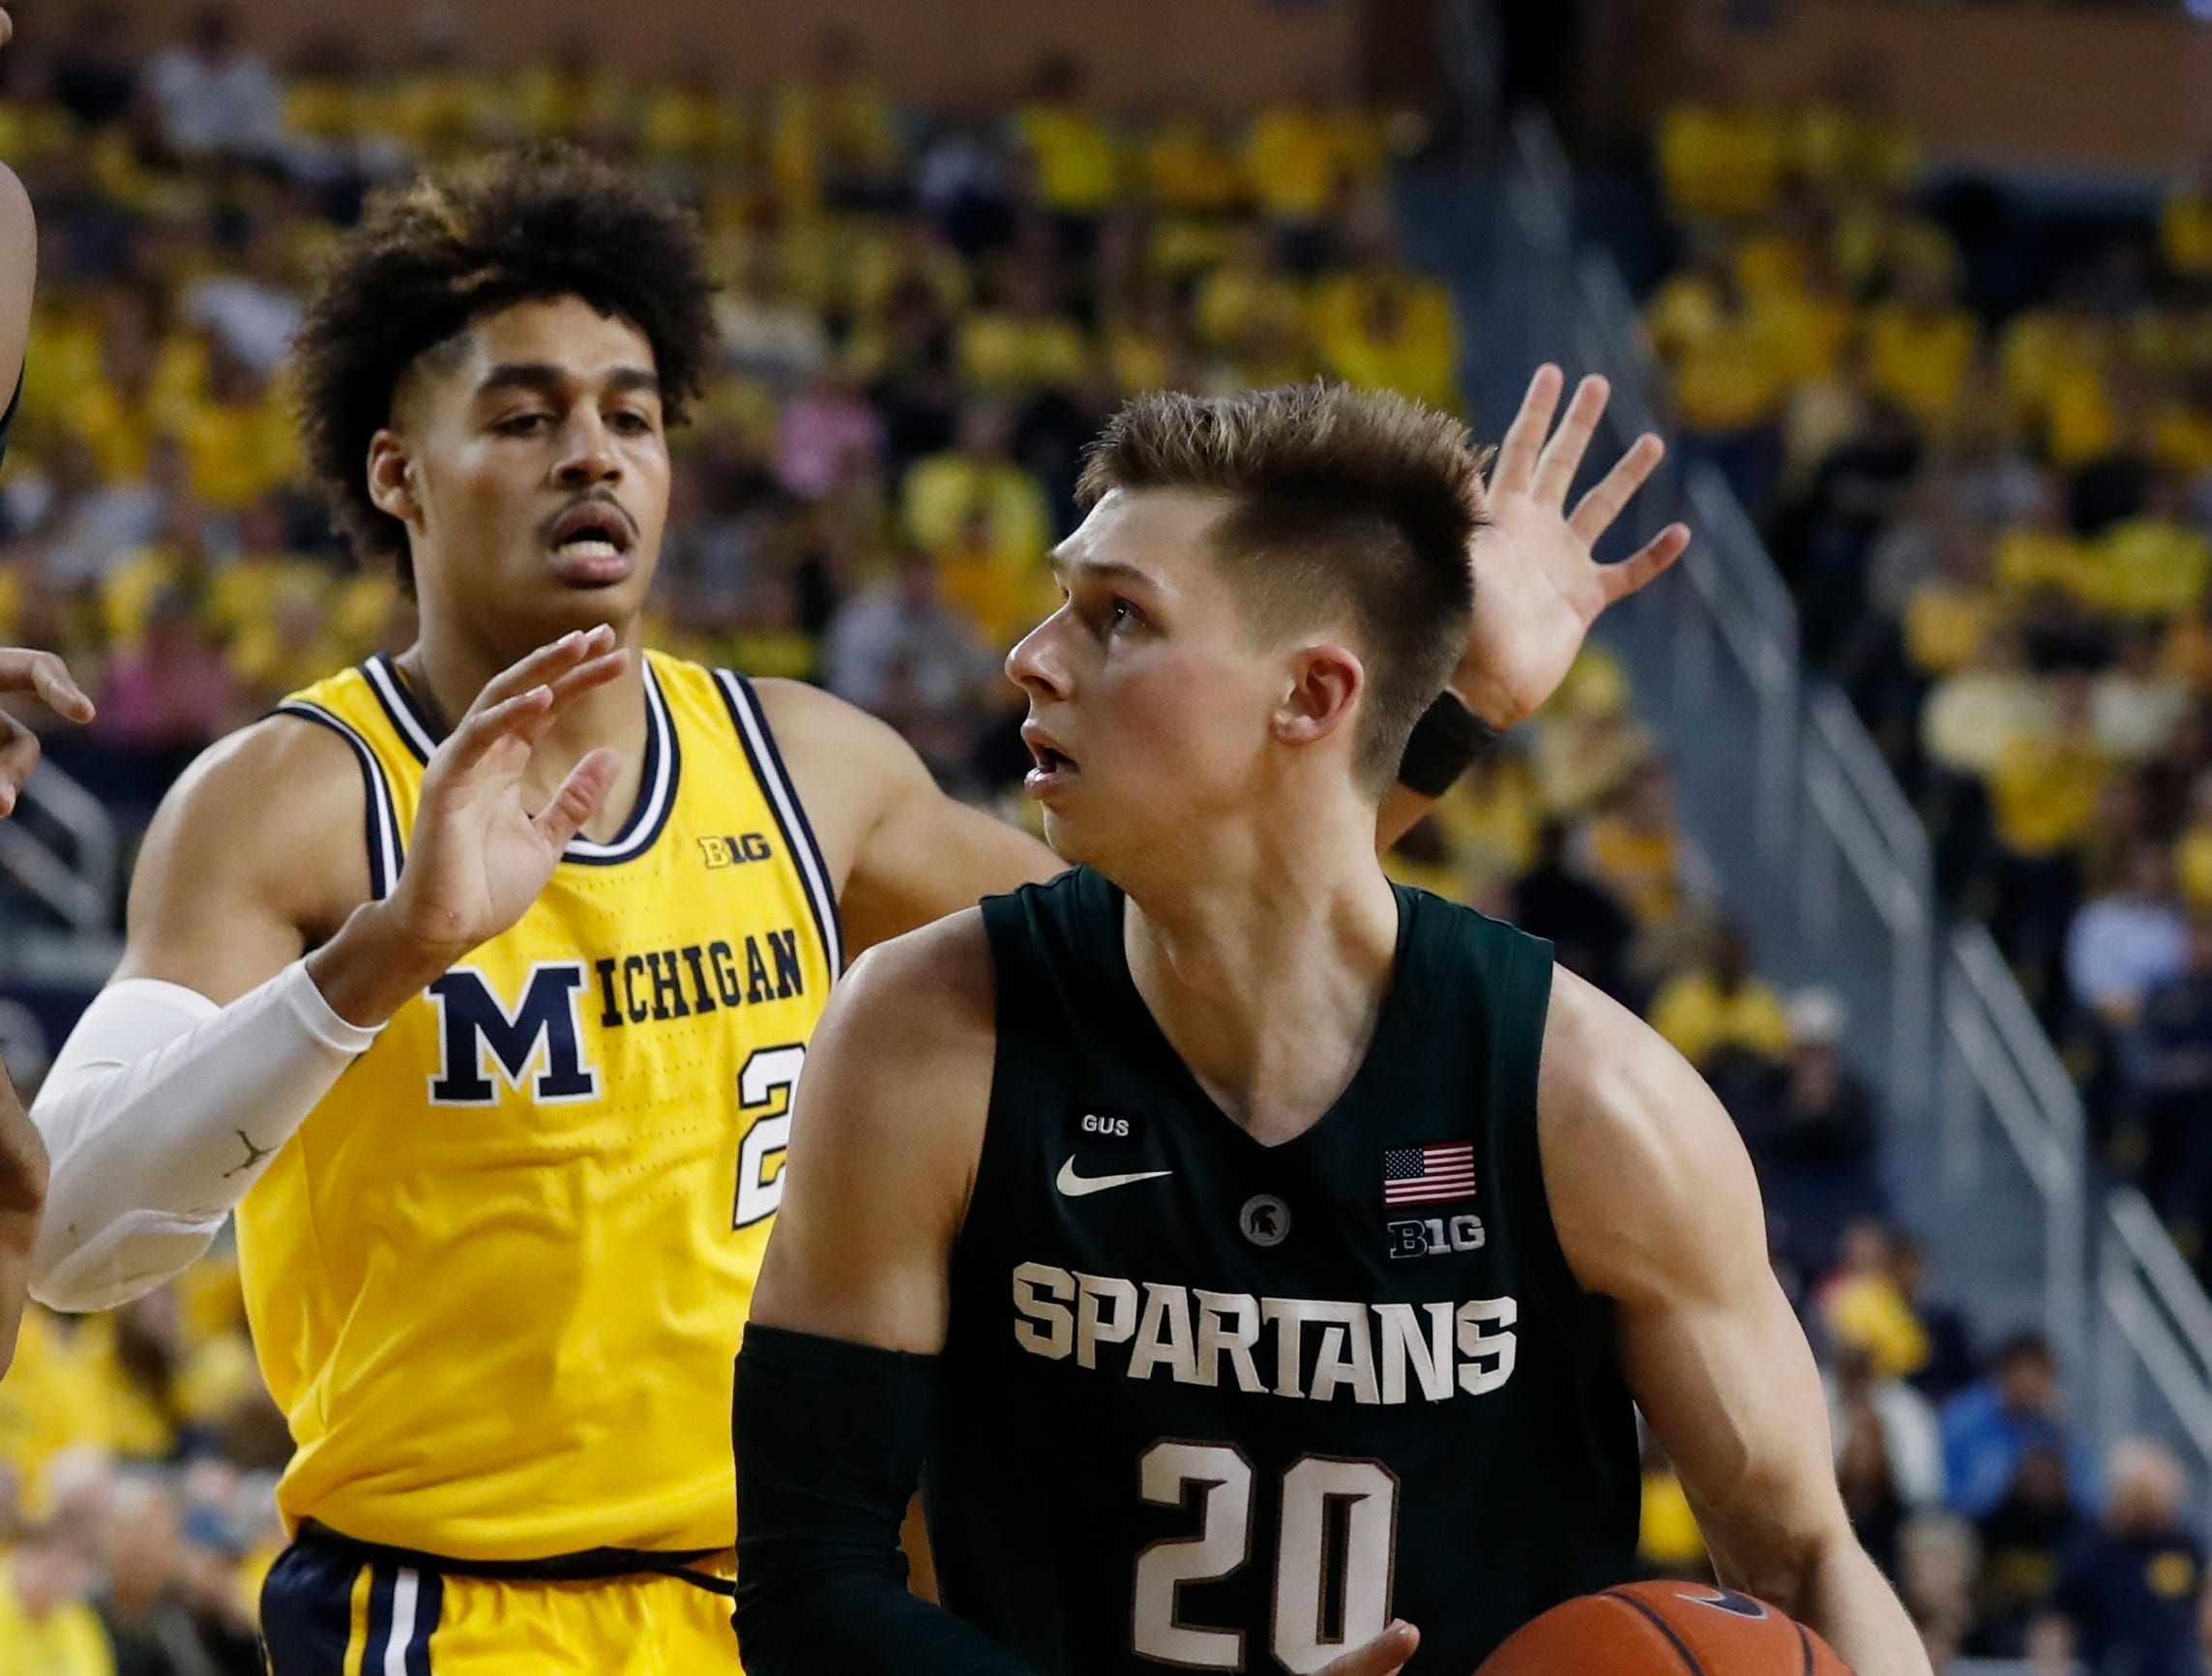 Michigan State guard Matt McQuaid (20) is defended by Michigan guard Jordan Poole (2) during the second half of an NCAA college basketball game, Sunday, Feb. 24, 2019, in Ann Arbor, Mich.